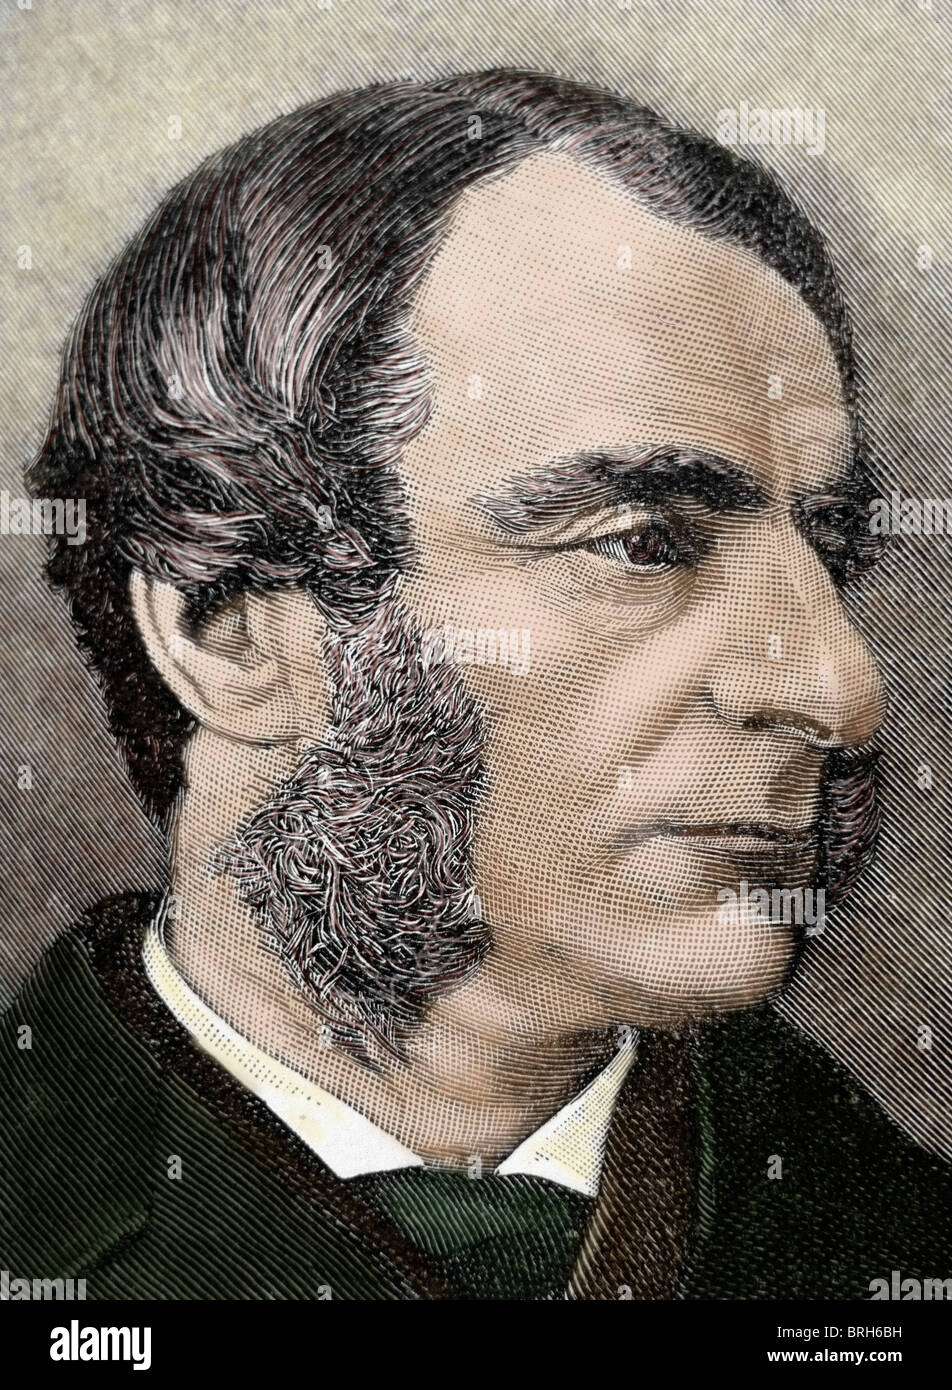 Kingsley, Charles (1819-1875). British writer and historian. Colored engraving. - Stock Image